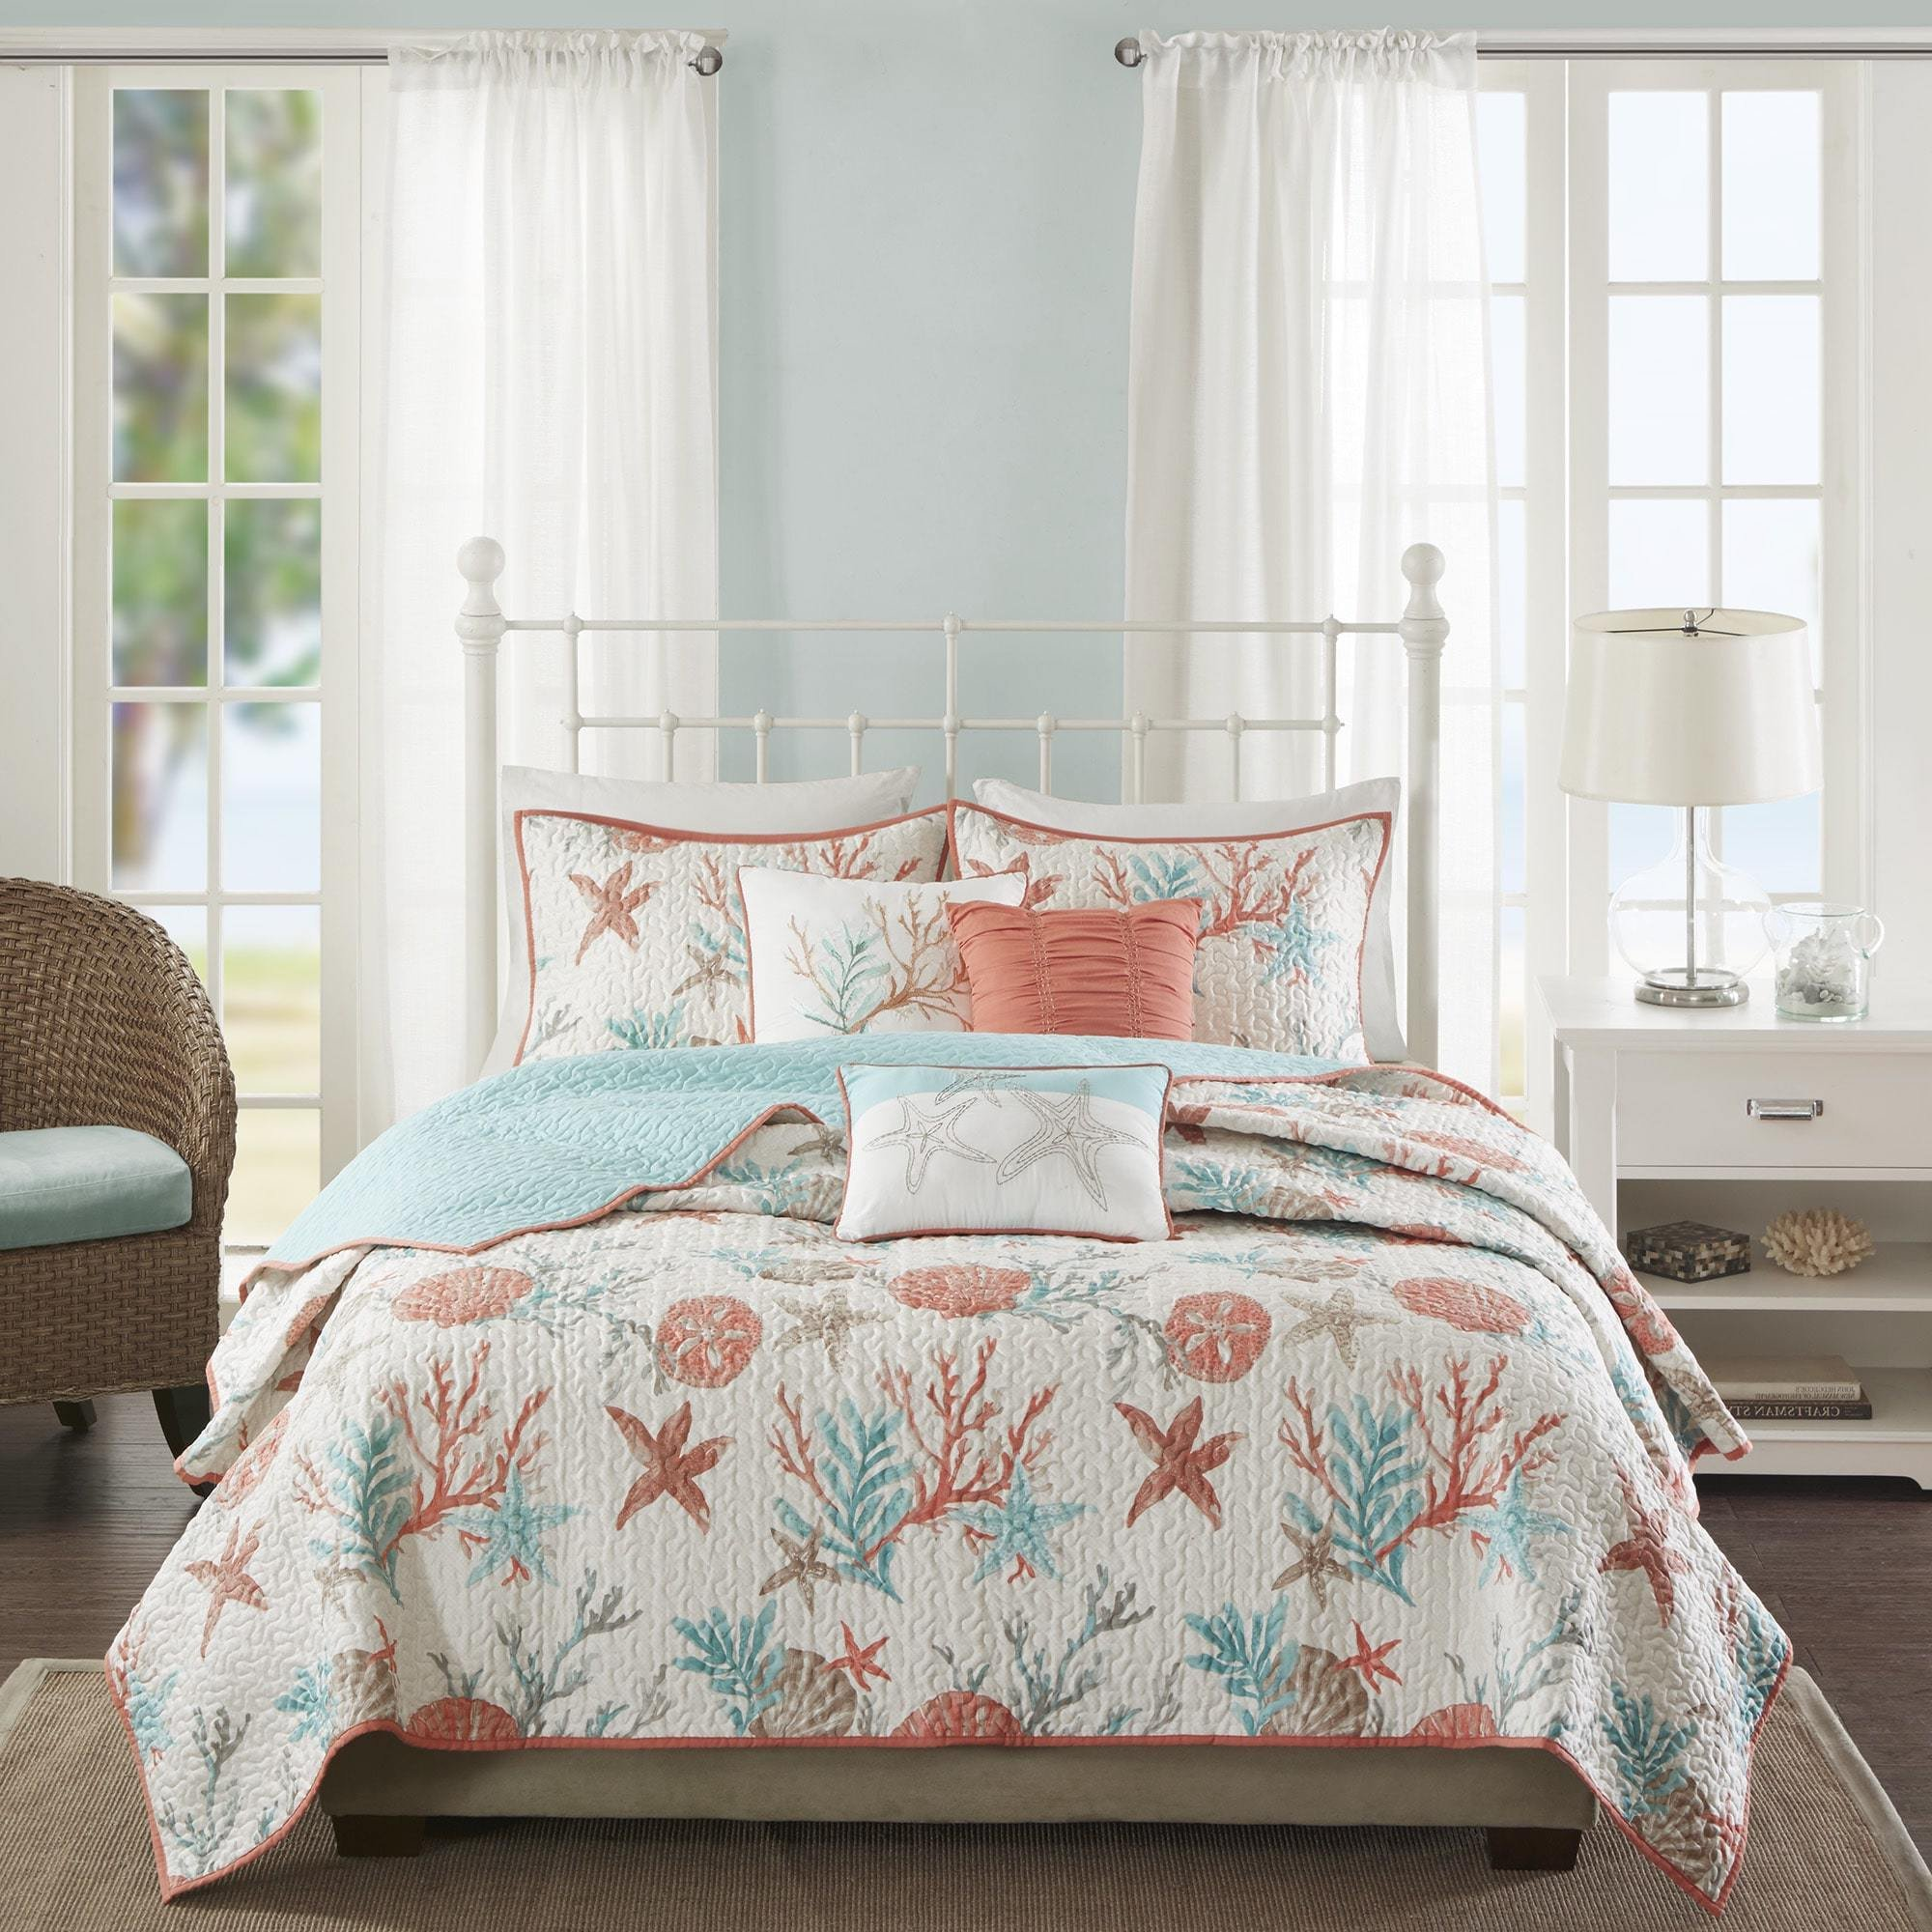 6 Piece Pink Coastal King/Cal King Size Coverlet Set, Beautiful Quilted Beach House Themed Bedding Coral Reefs Sea Shell Star Fish Ocean Vacation Sand Nautical Lake Cottage, Cotton